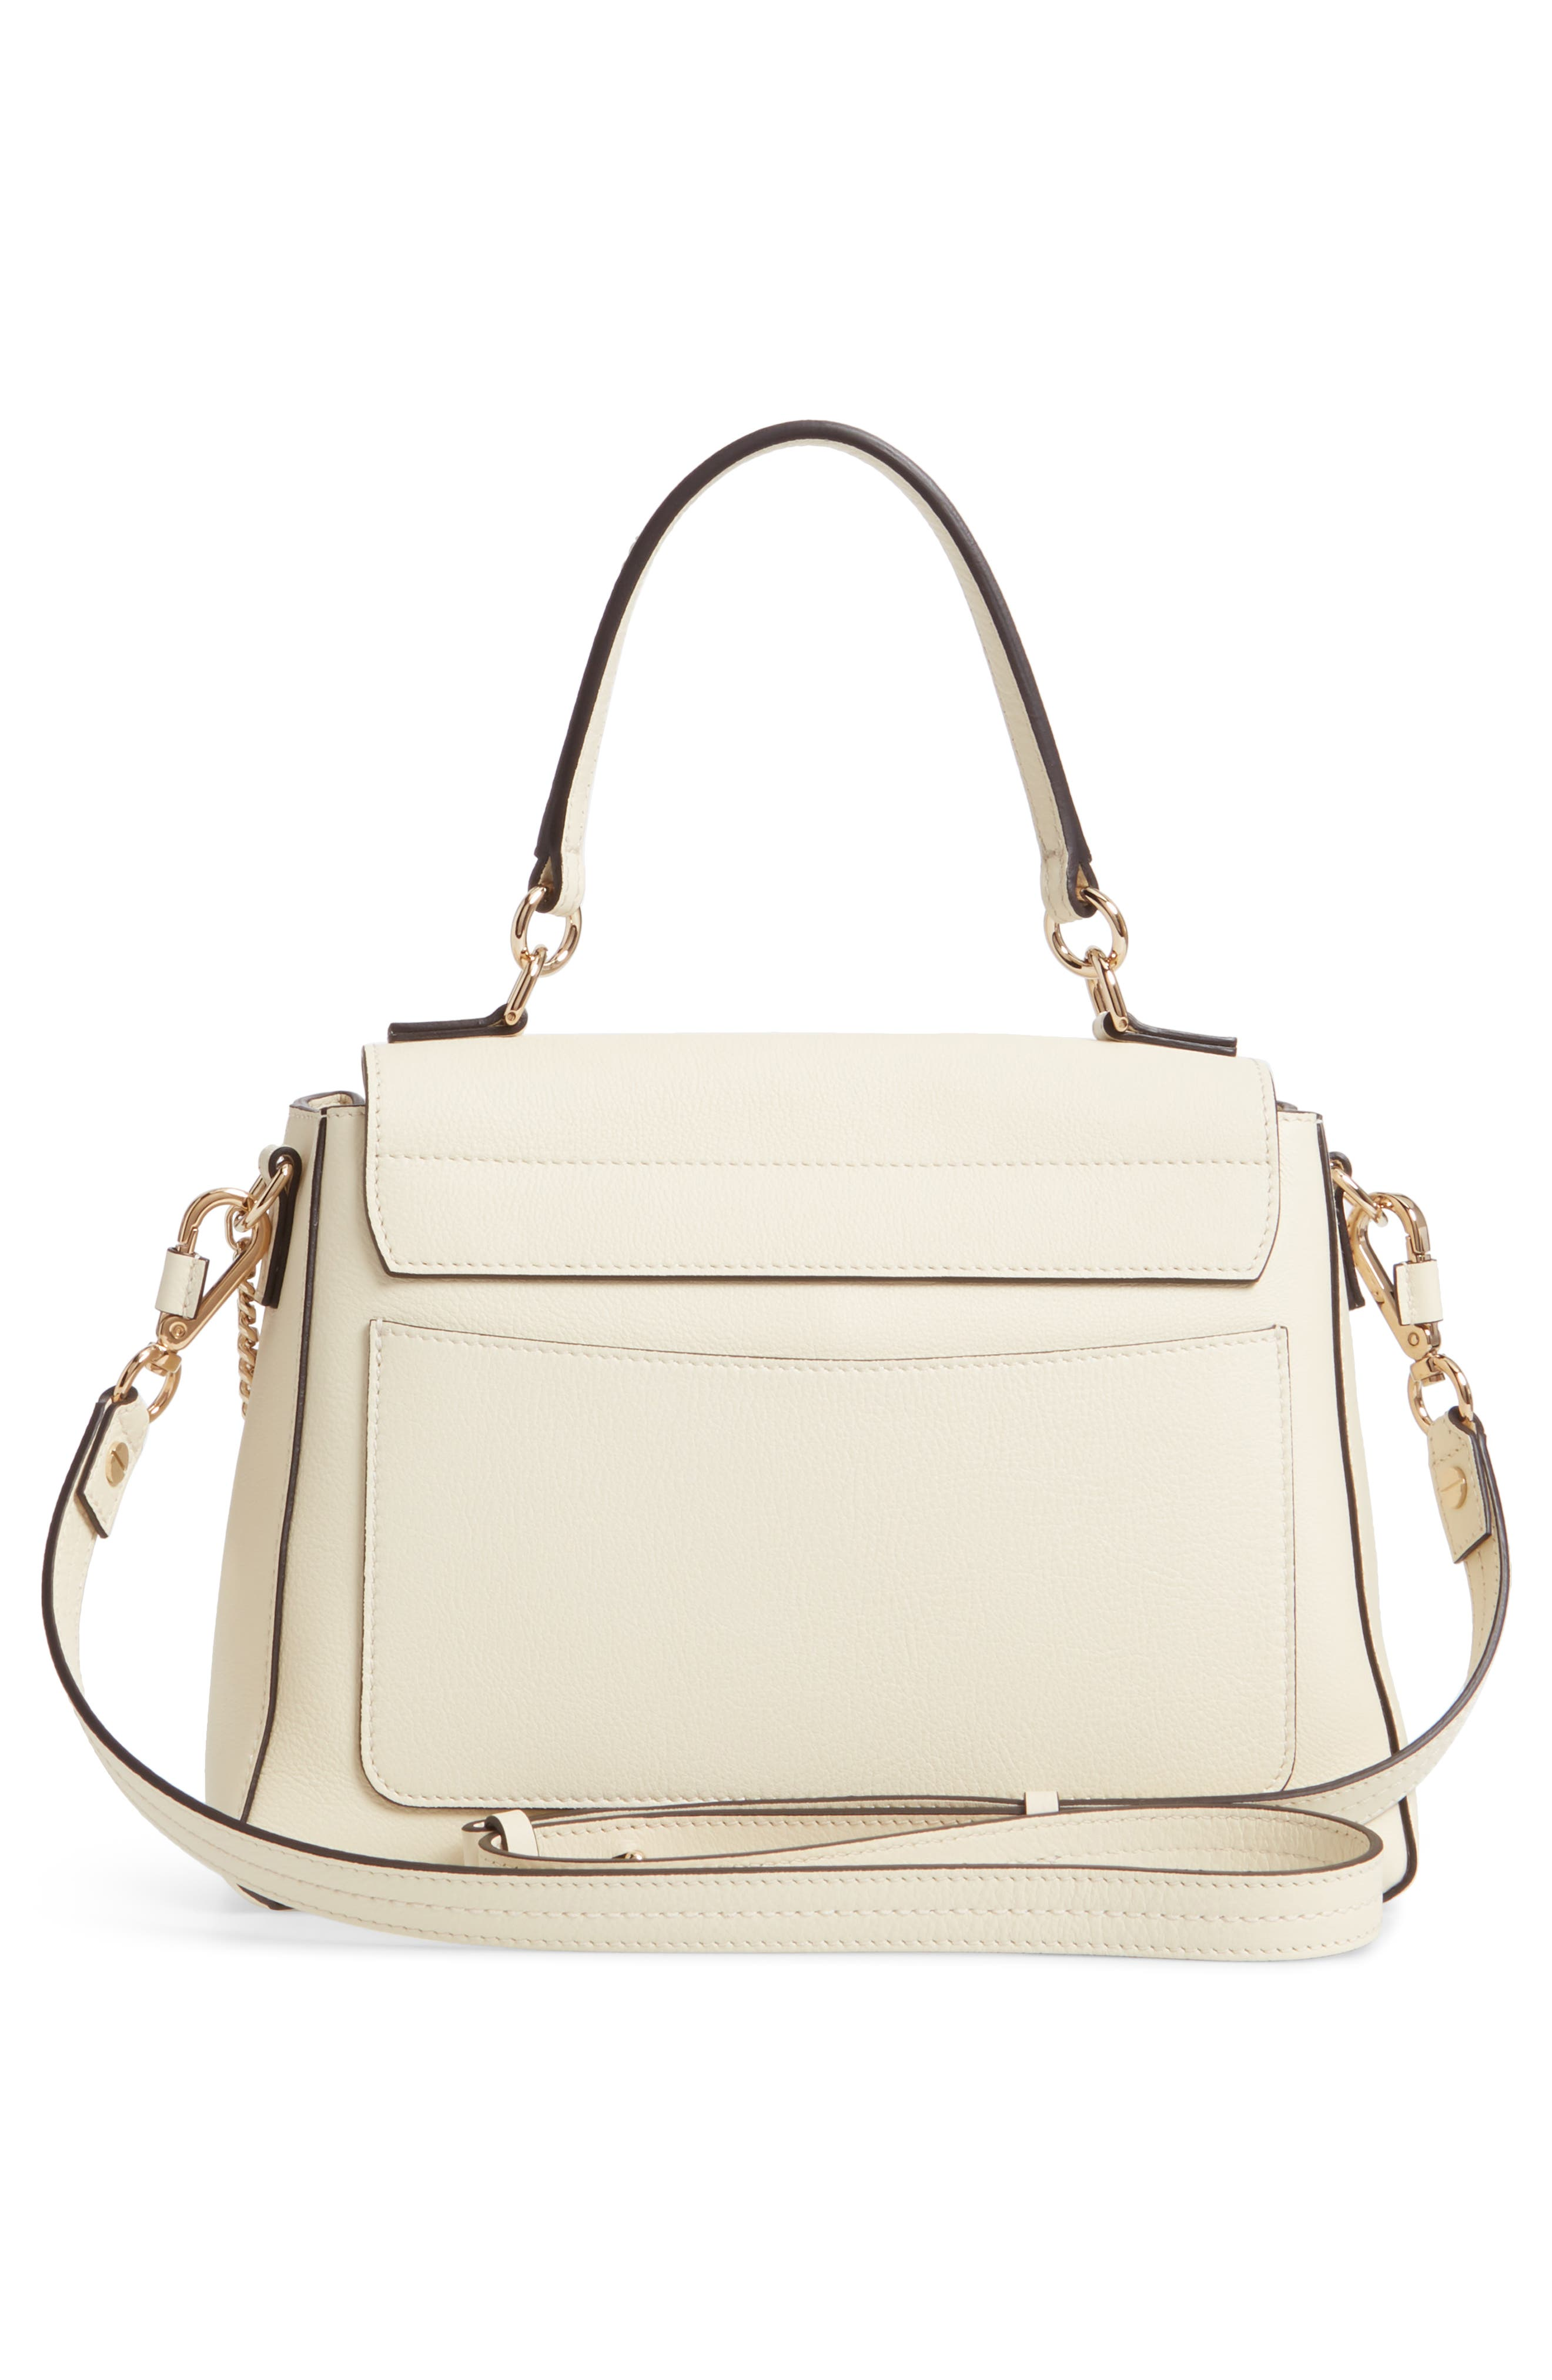 CHLOÉ,                             Small Faye Day Leather Shoulder Bag,                             Alternate thumbnail 3, color,                             905